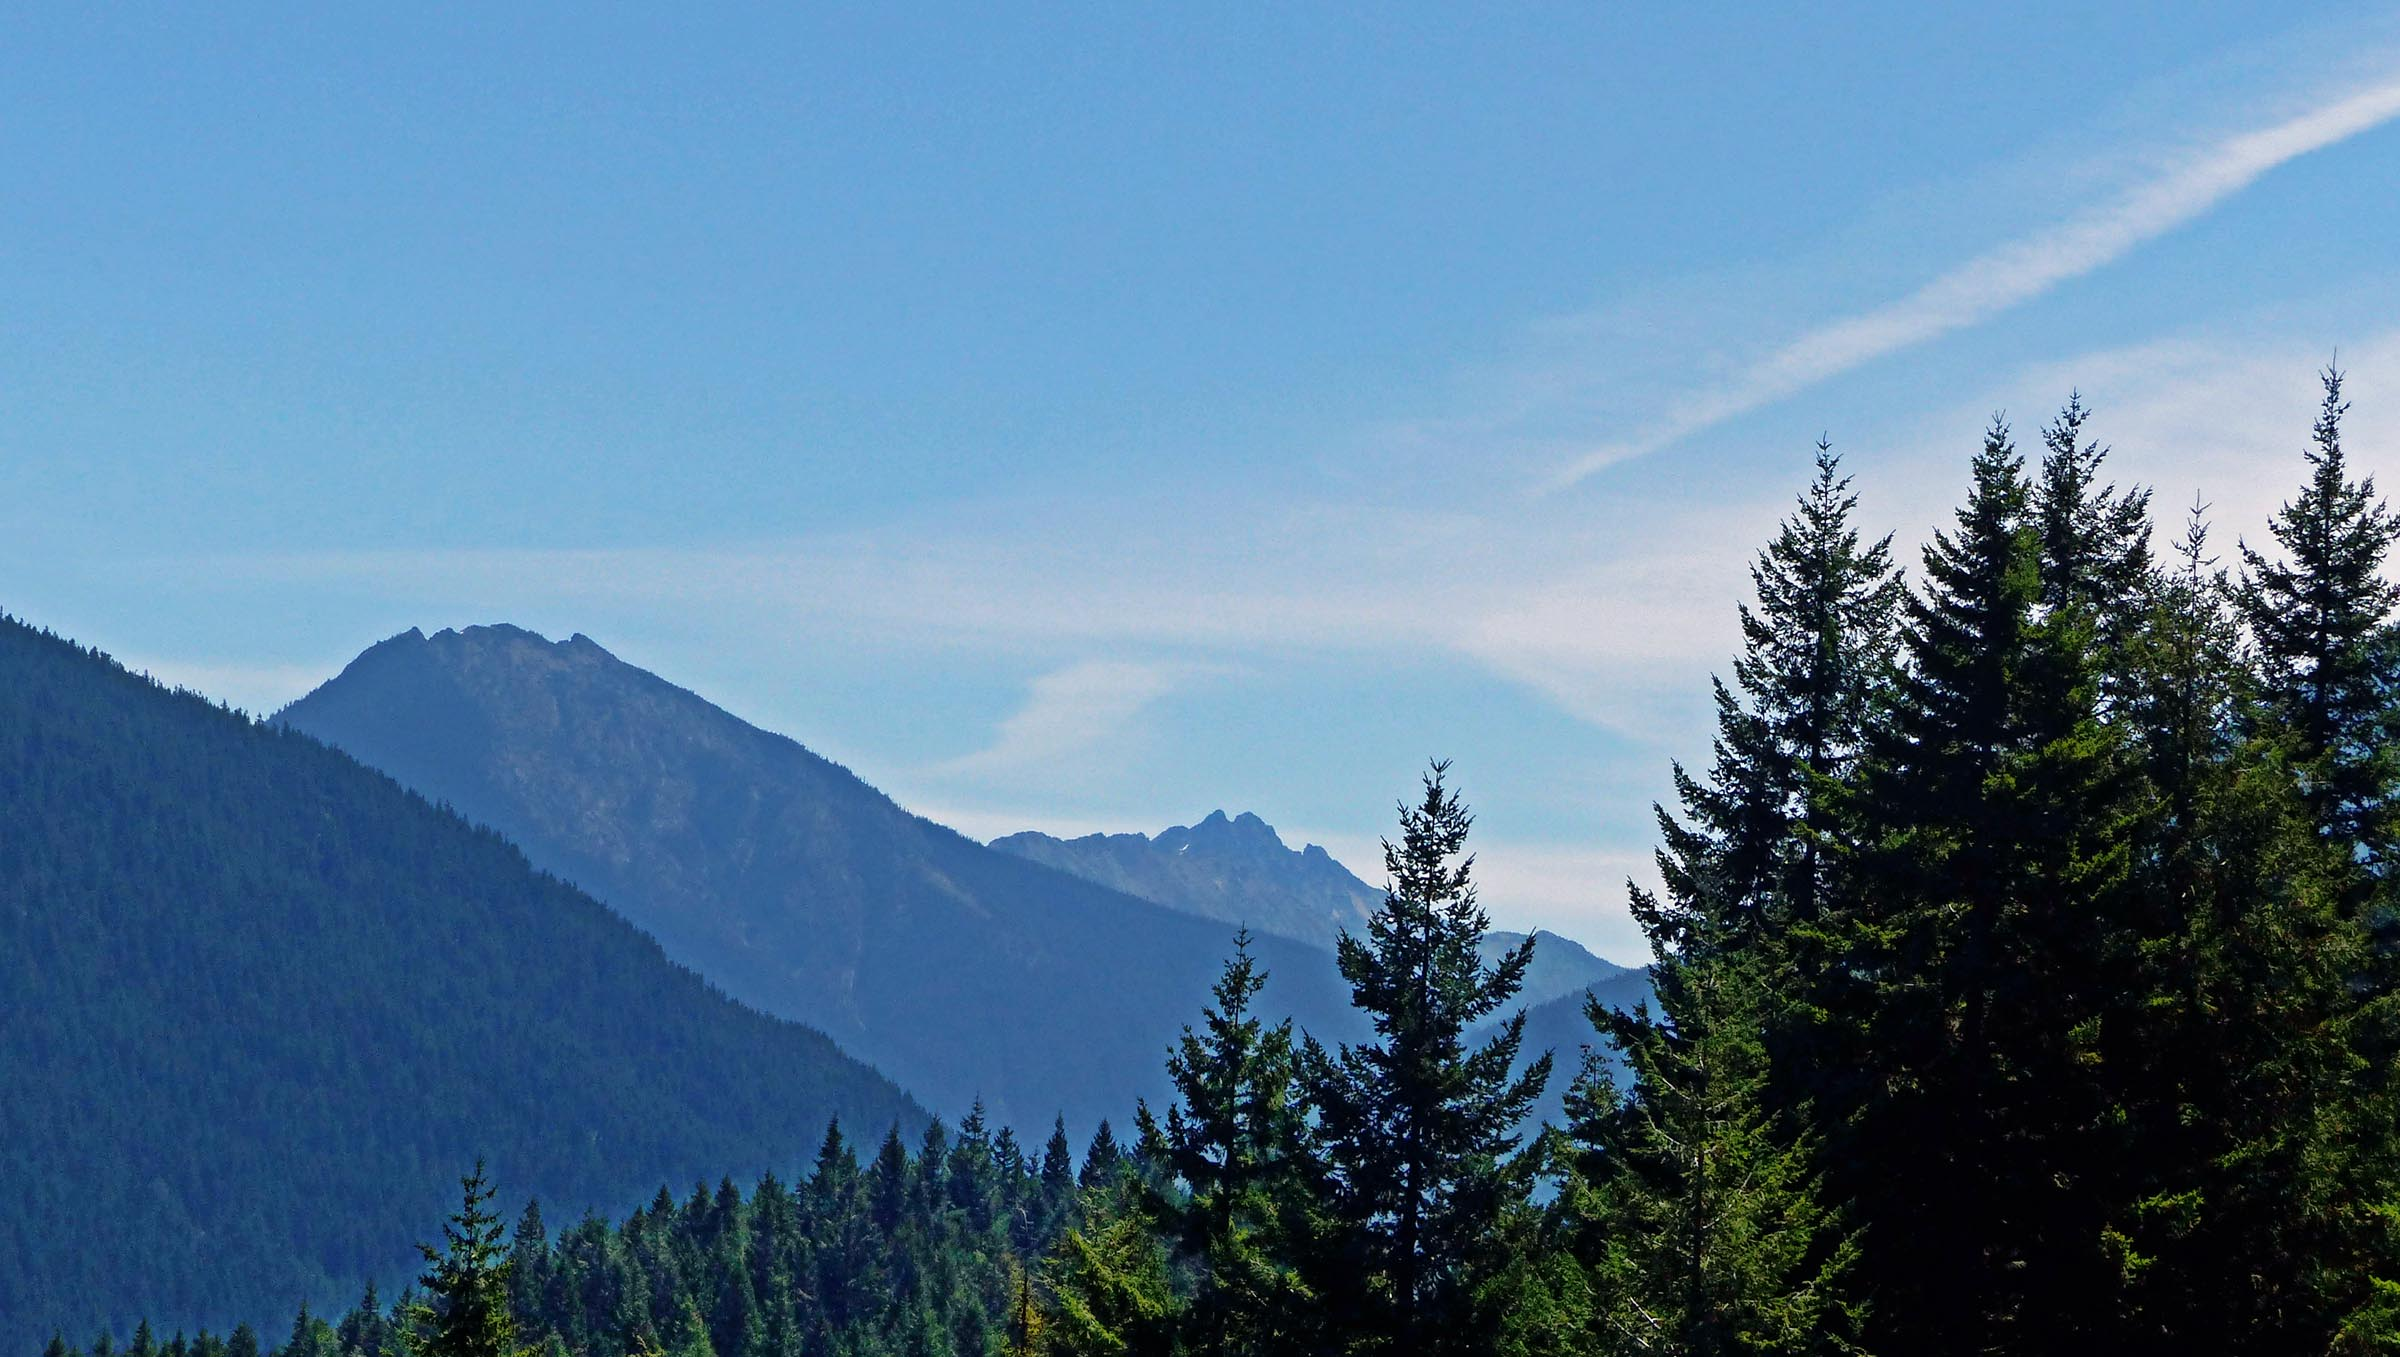 DIstant mountains with conifers in foreground